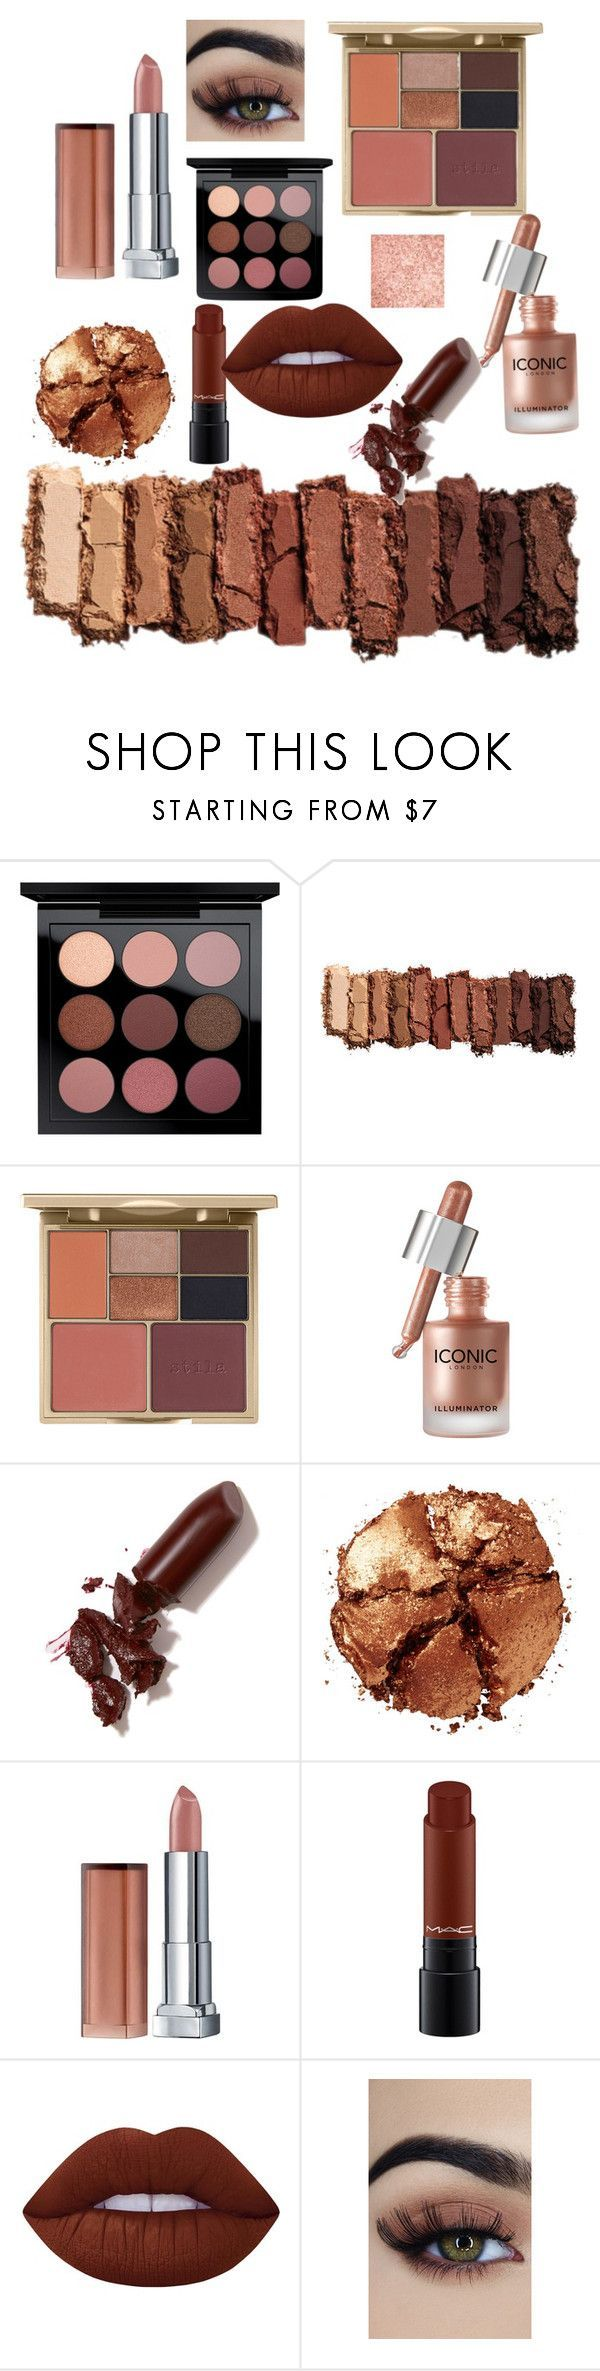 Browns and Coppers fall makeup by rosegoldpearls featuring beauty products from Urban Decay, Stila, MAC Cosmetics, Maybelline, Lime Crime,  and NYX *affiliate link included